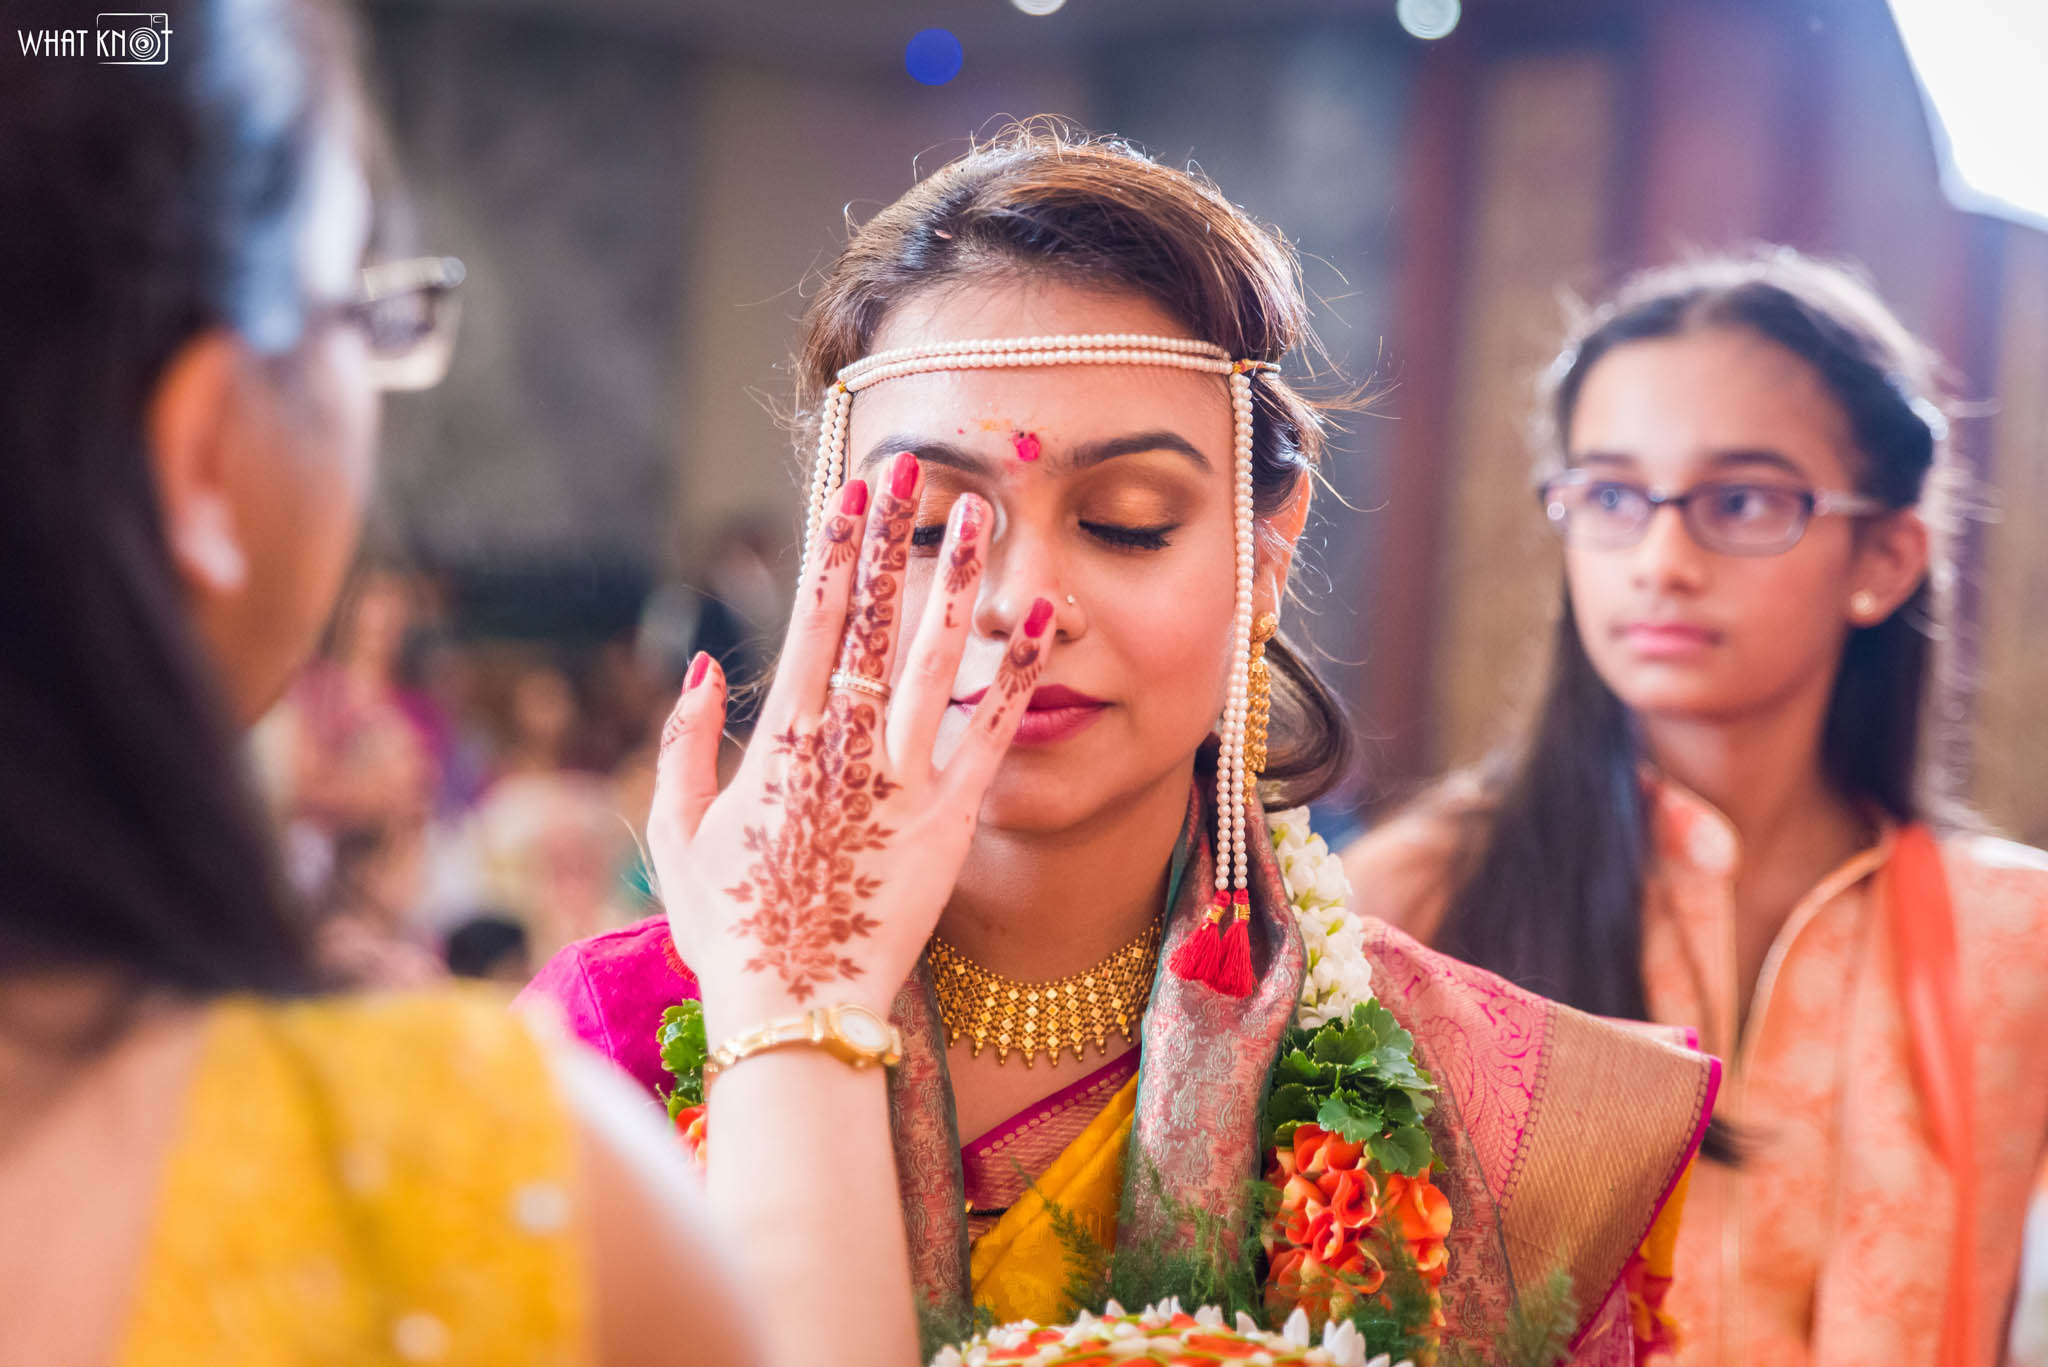 Candid-Wedding-Photography-WhatKnot-Marathi-153